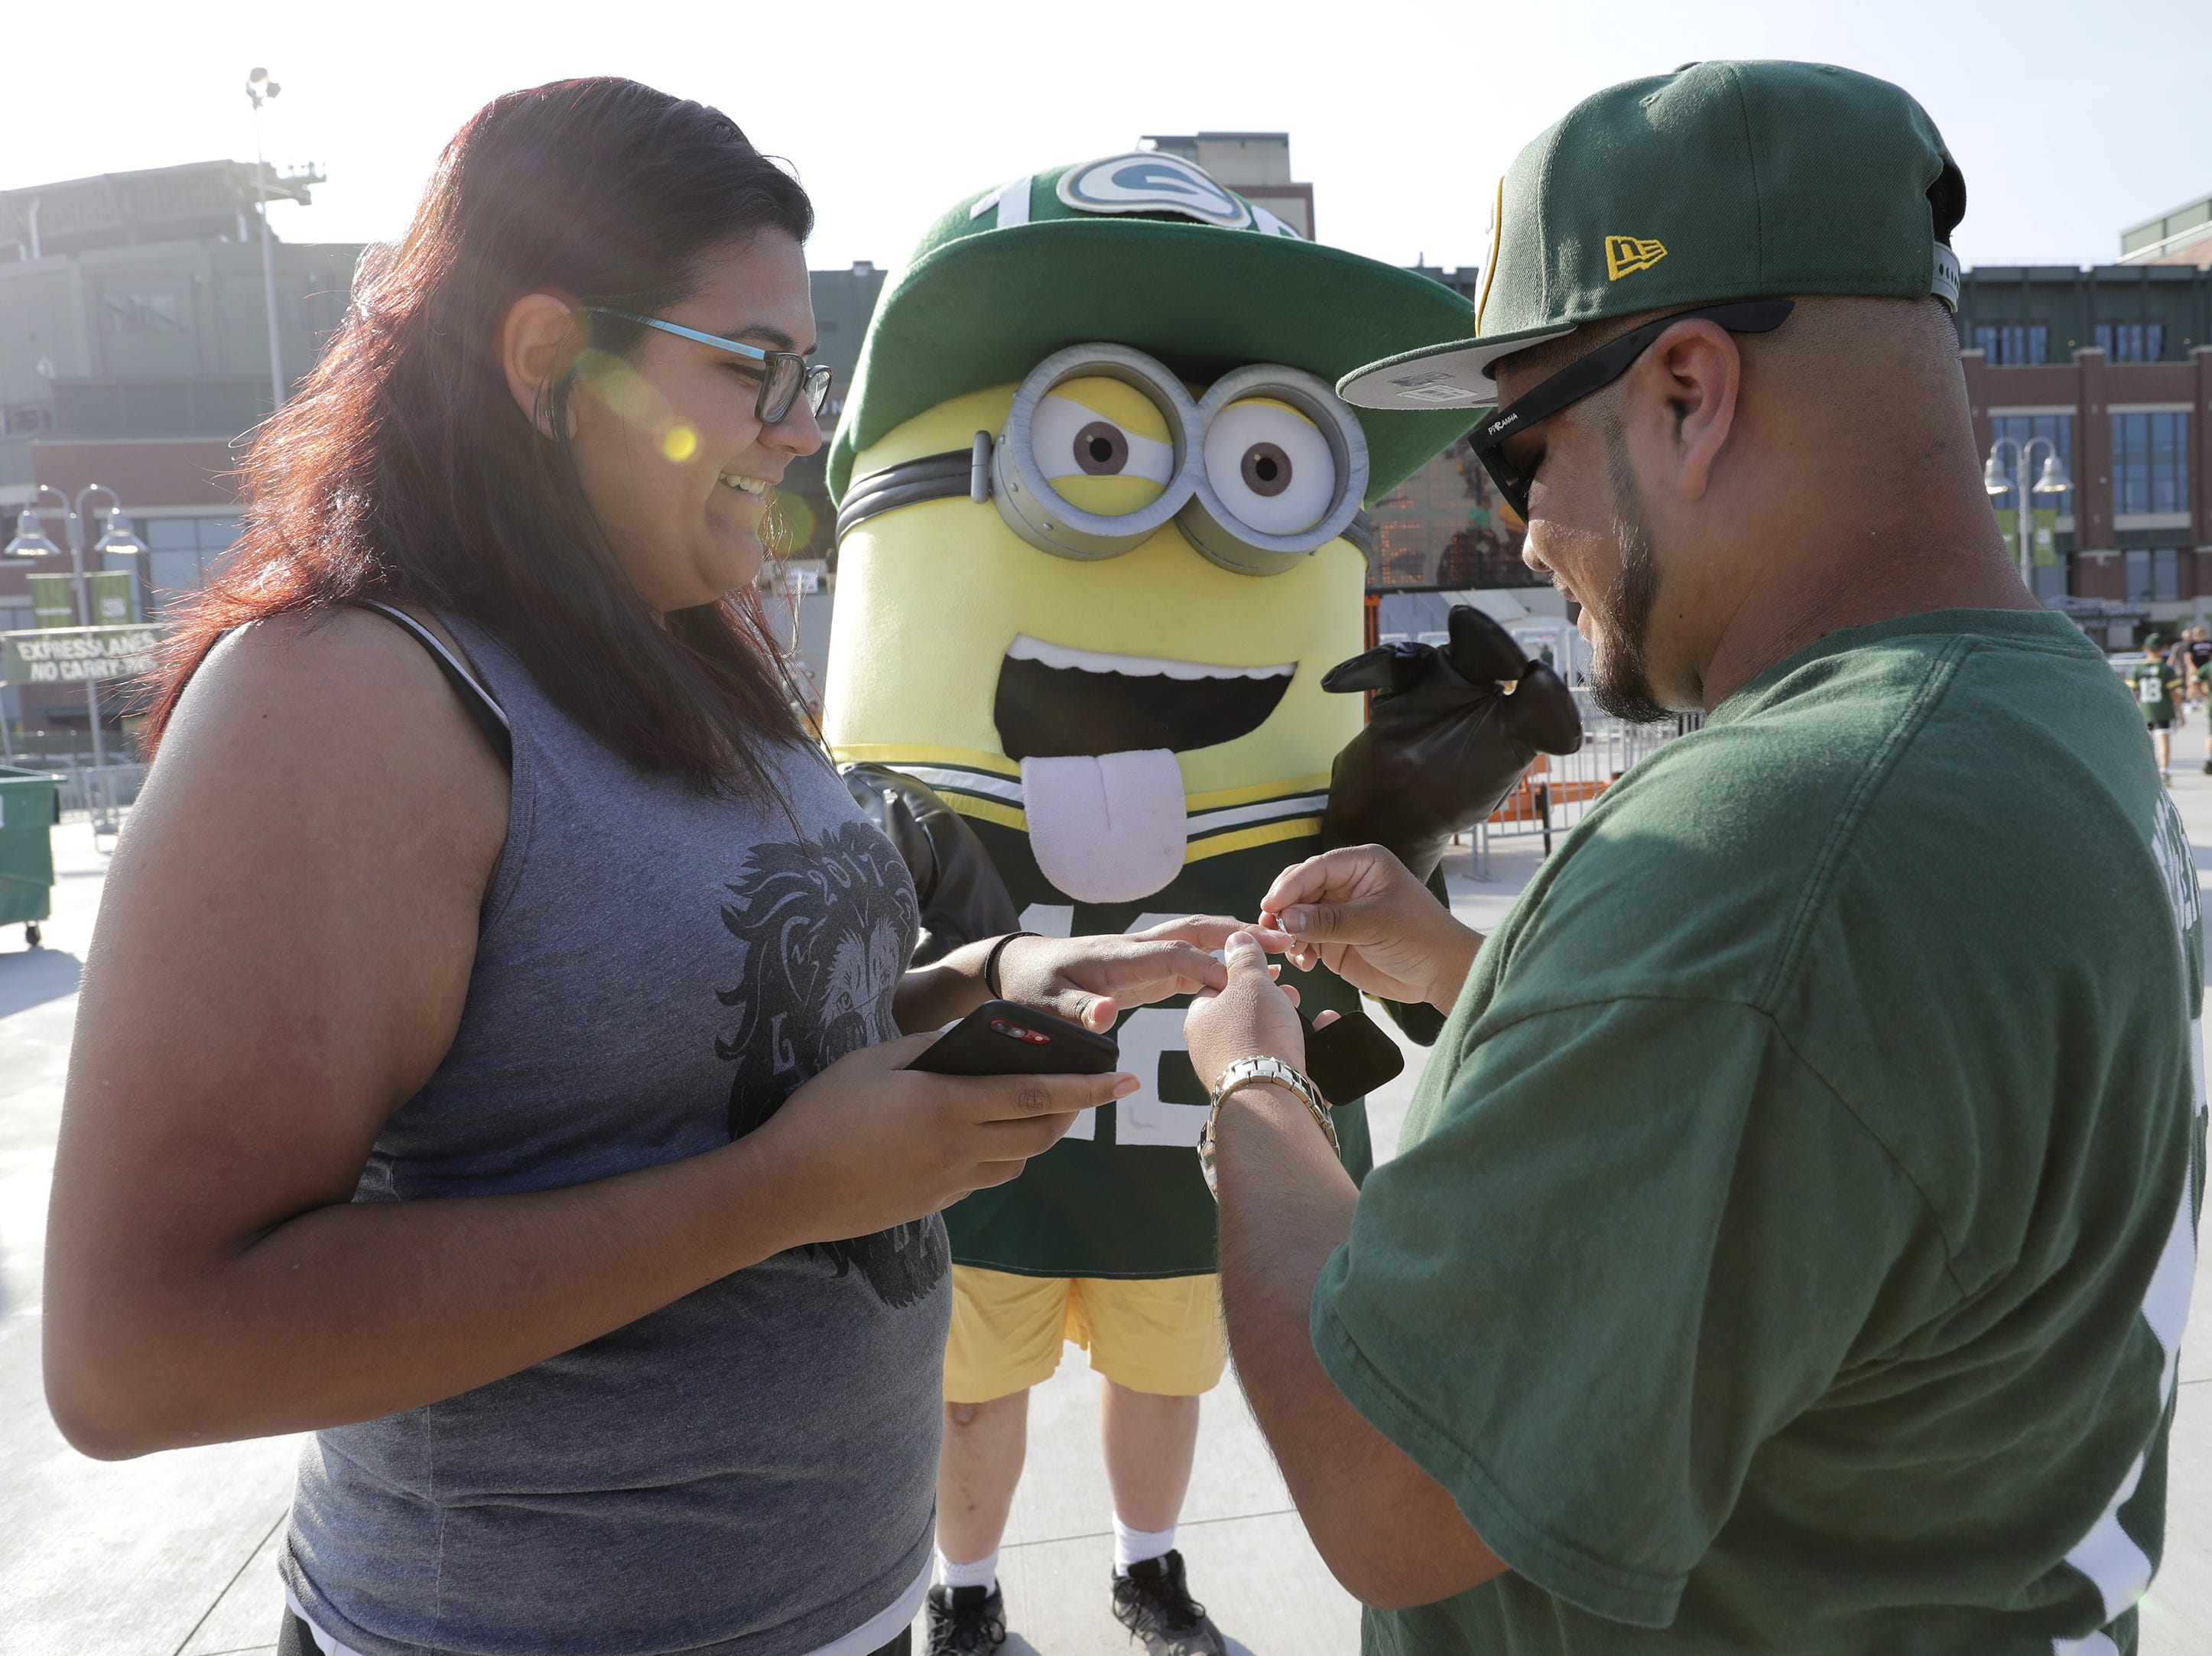 Alex Perez of Chicago proposes to Monica Rayes of Chicago prior to the Green Bay Packers football game Thursday, August 9, 2018, at Lambeau Field in Green Bay, Wis.